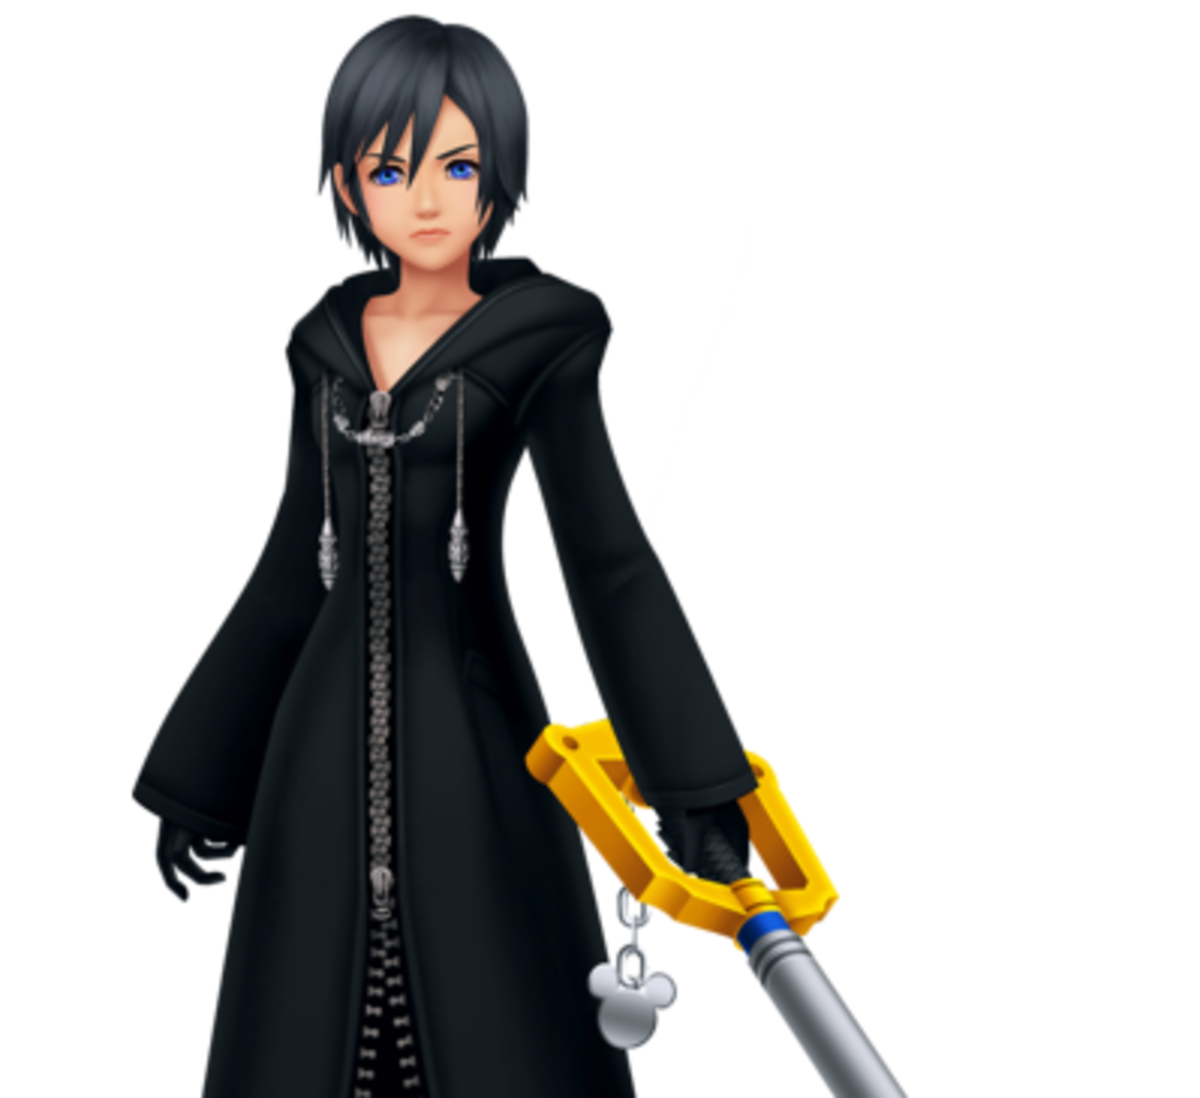 Top 10 Strongest Organization XIII Members in